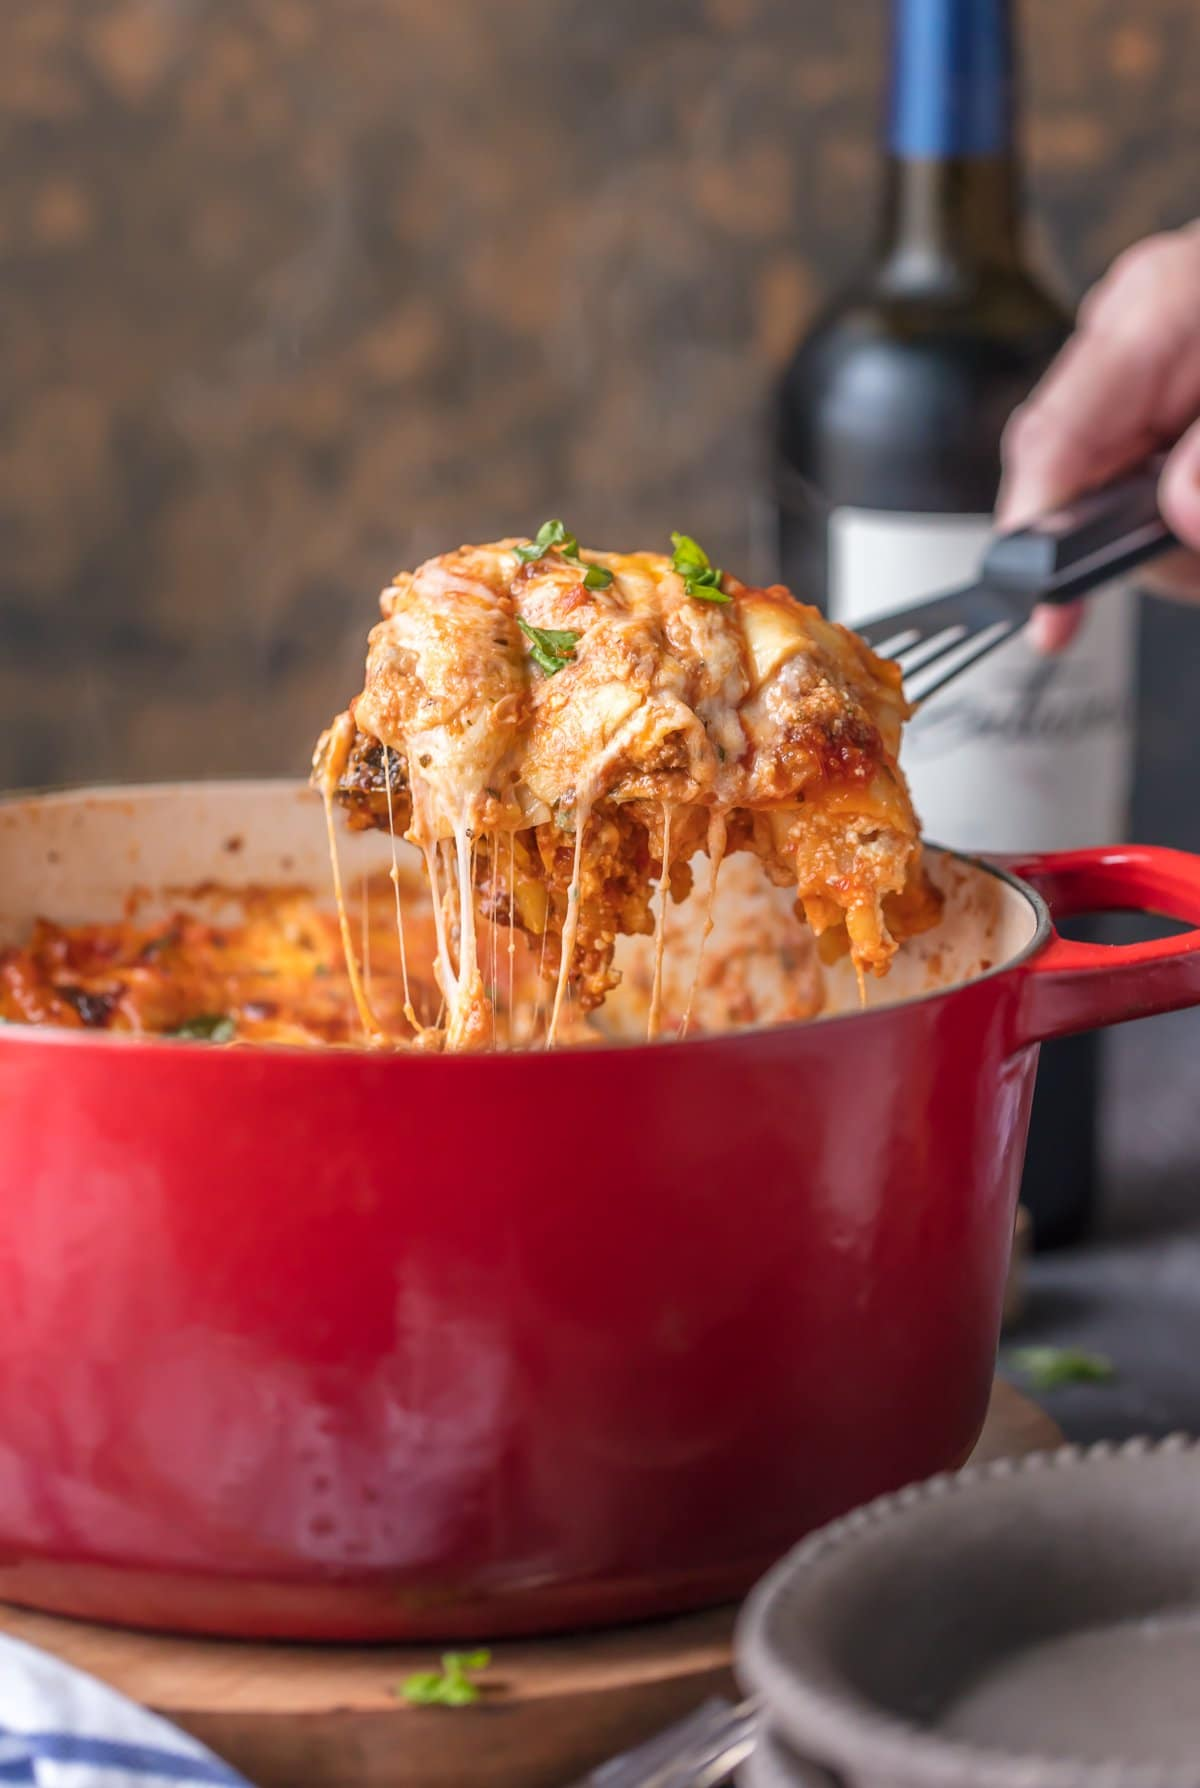 Best dutch oven recipe for lasagna